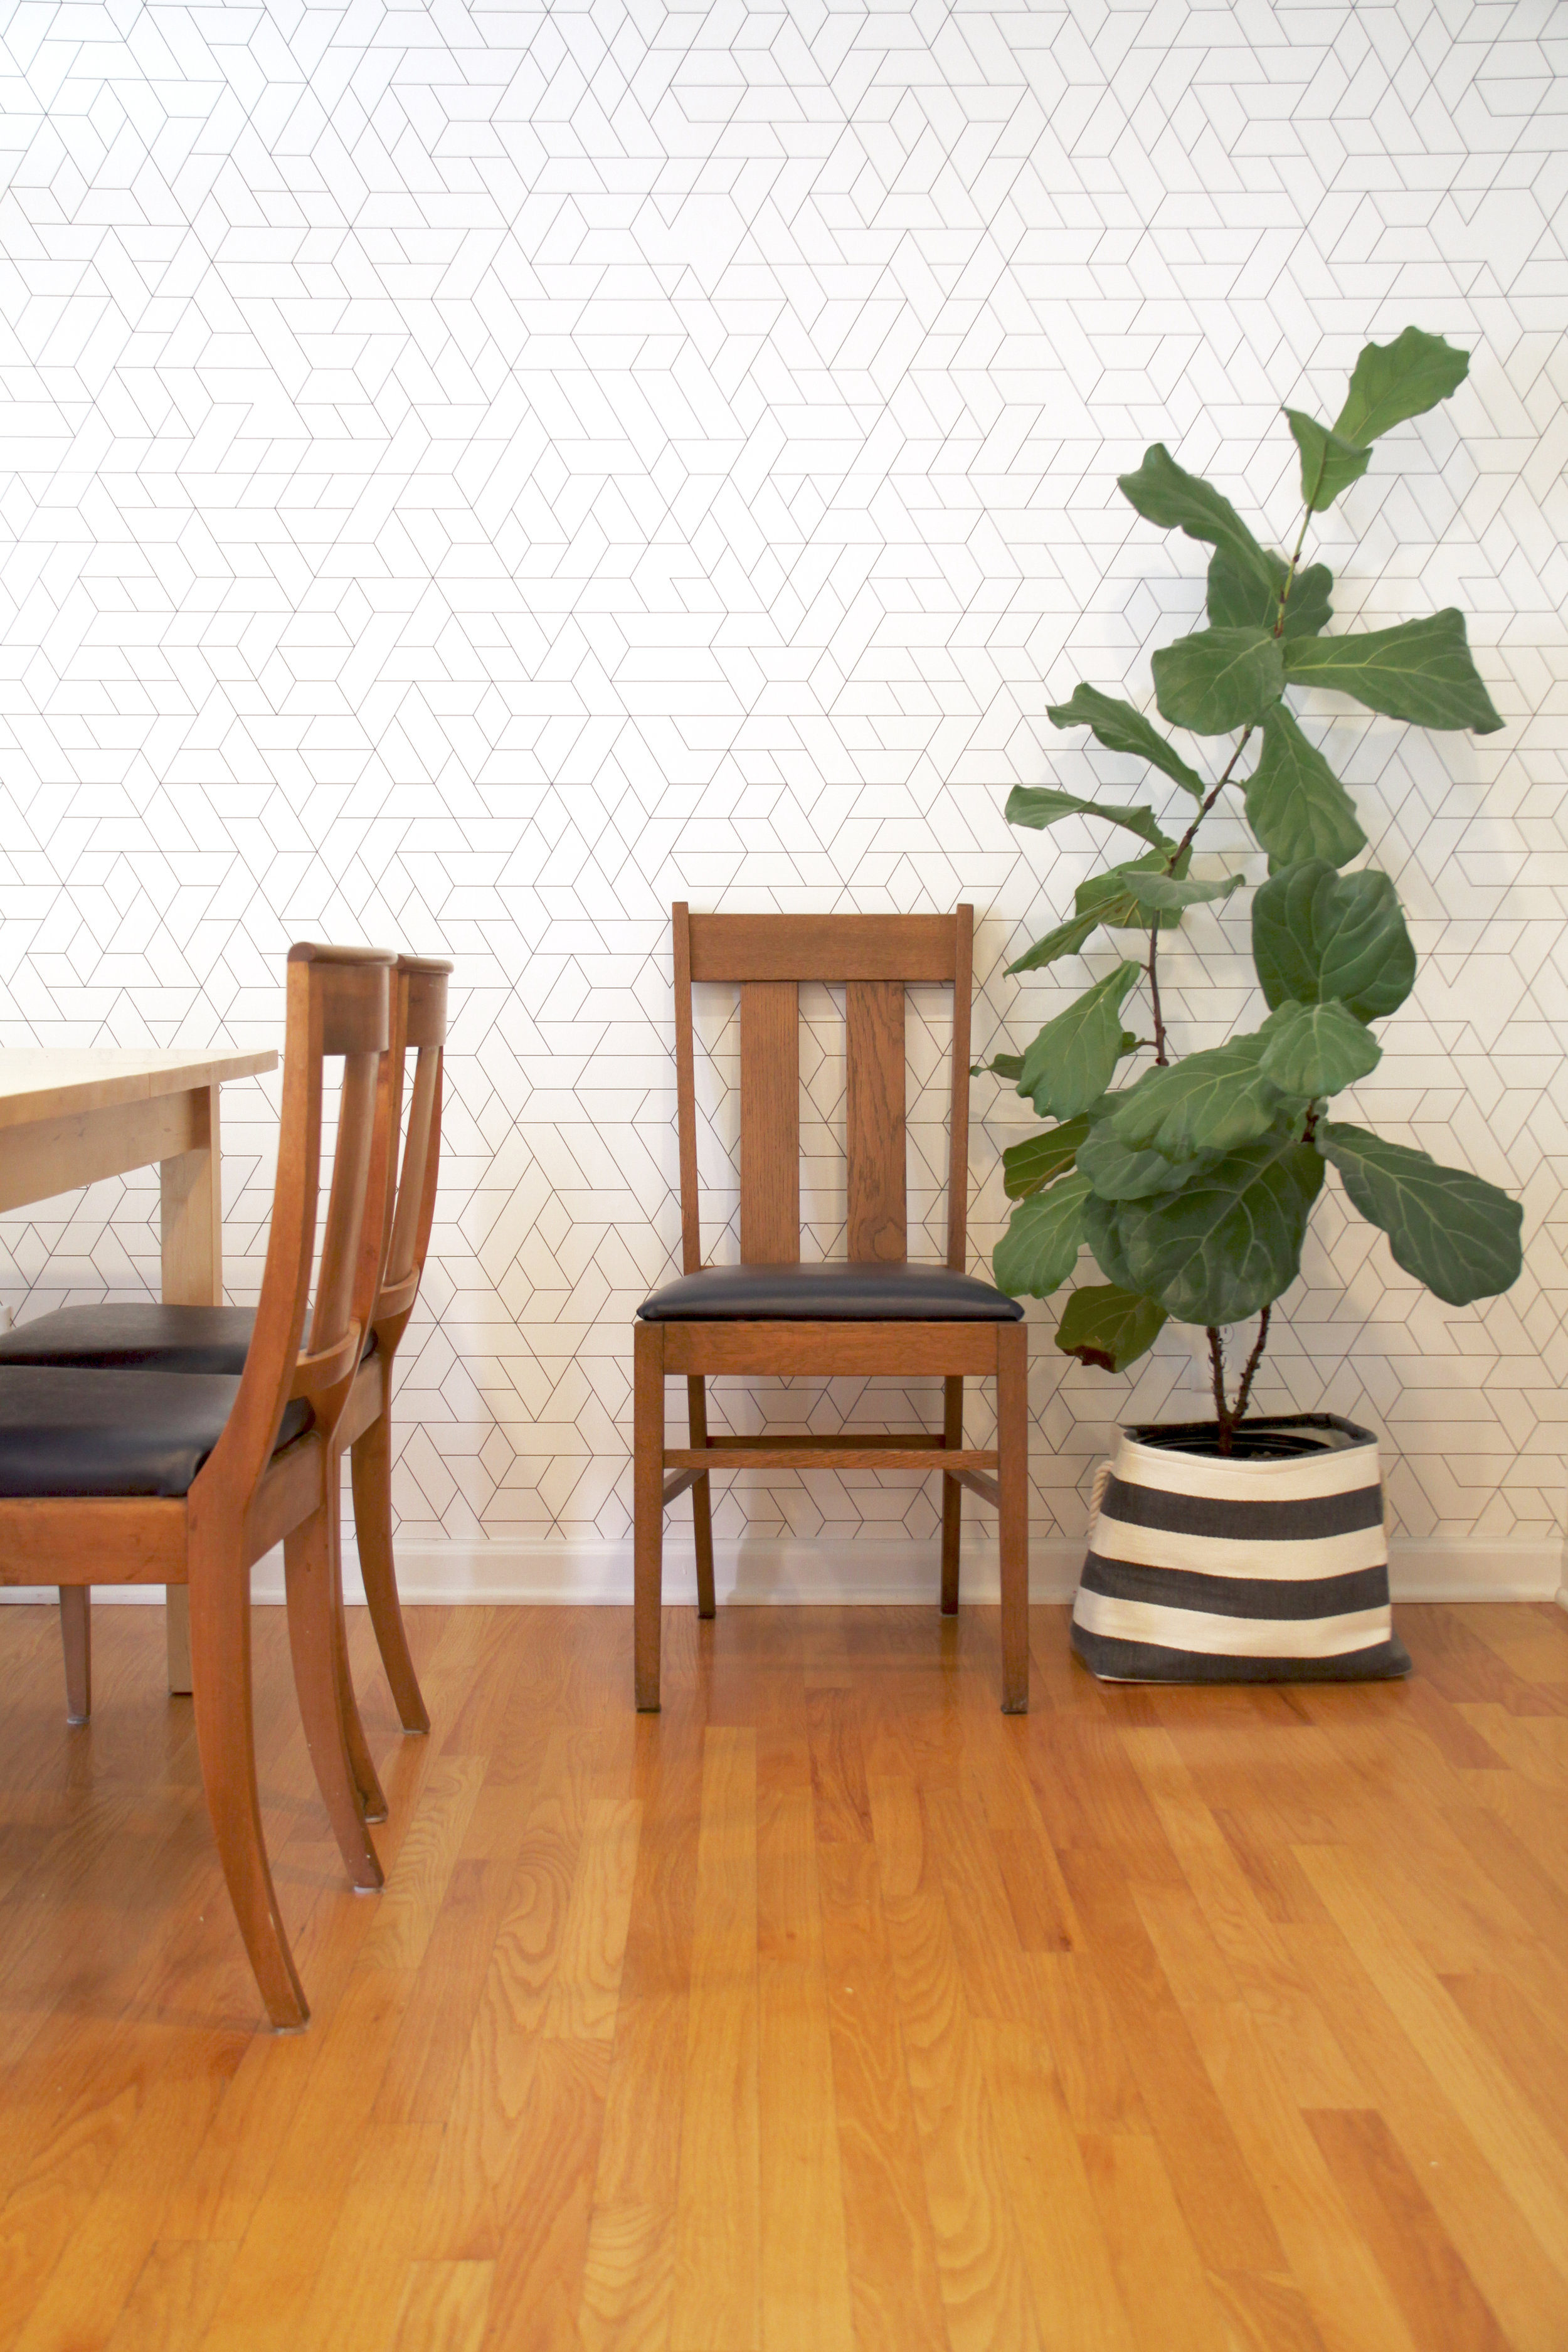 Midcentury Dining Room with Wallpaper